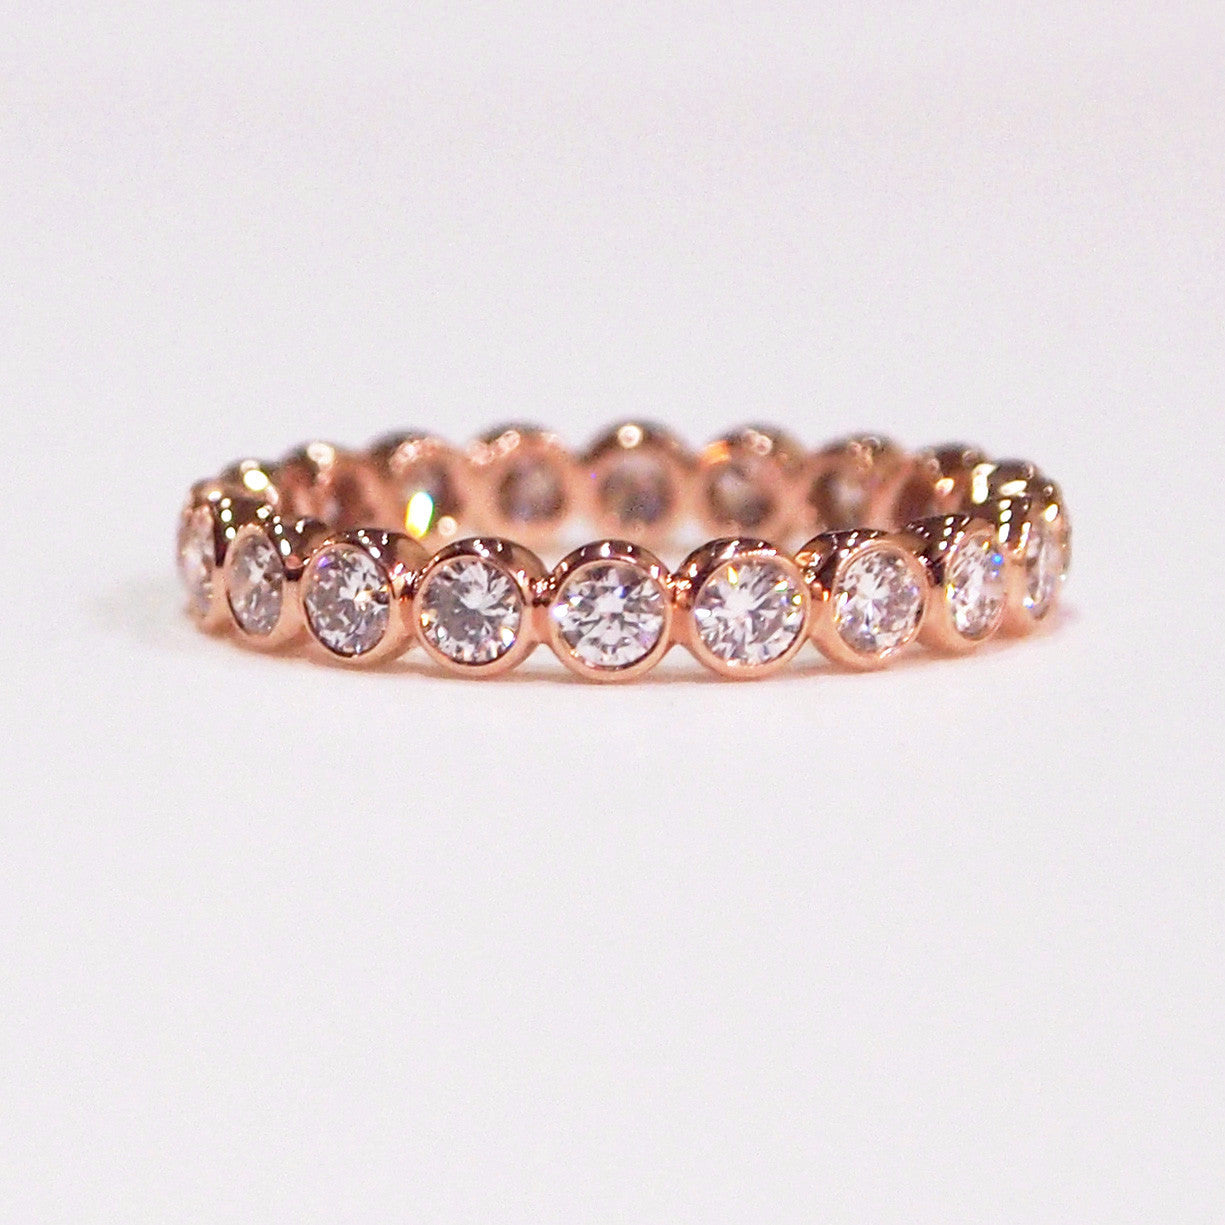 Mark Patterson 18K rose gold eternity diamond wedding band with 20 brilliant-cut bezel-set diamonds